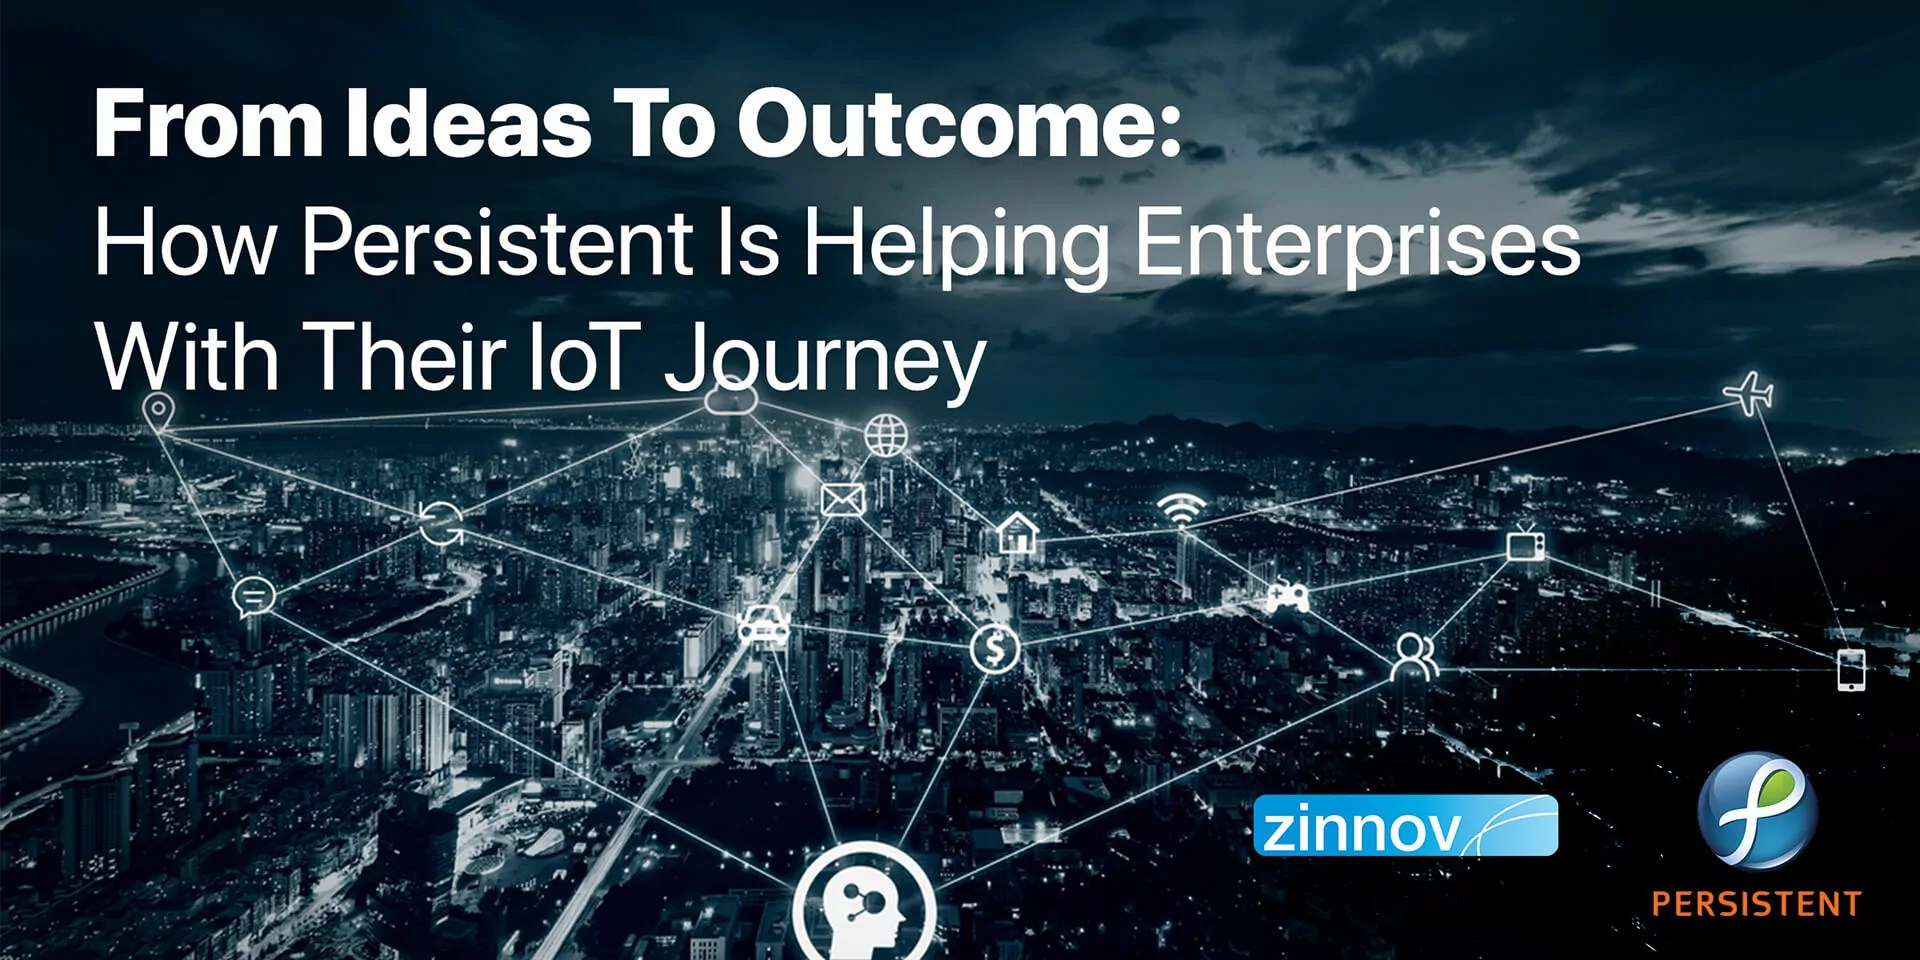 IoT Adoption In Enterprises: How Persistent Is Helping Enterprises With Their IoT Journey